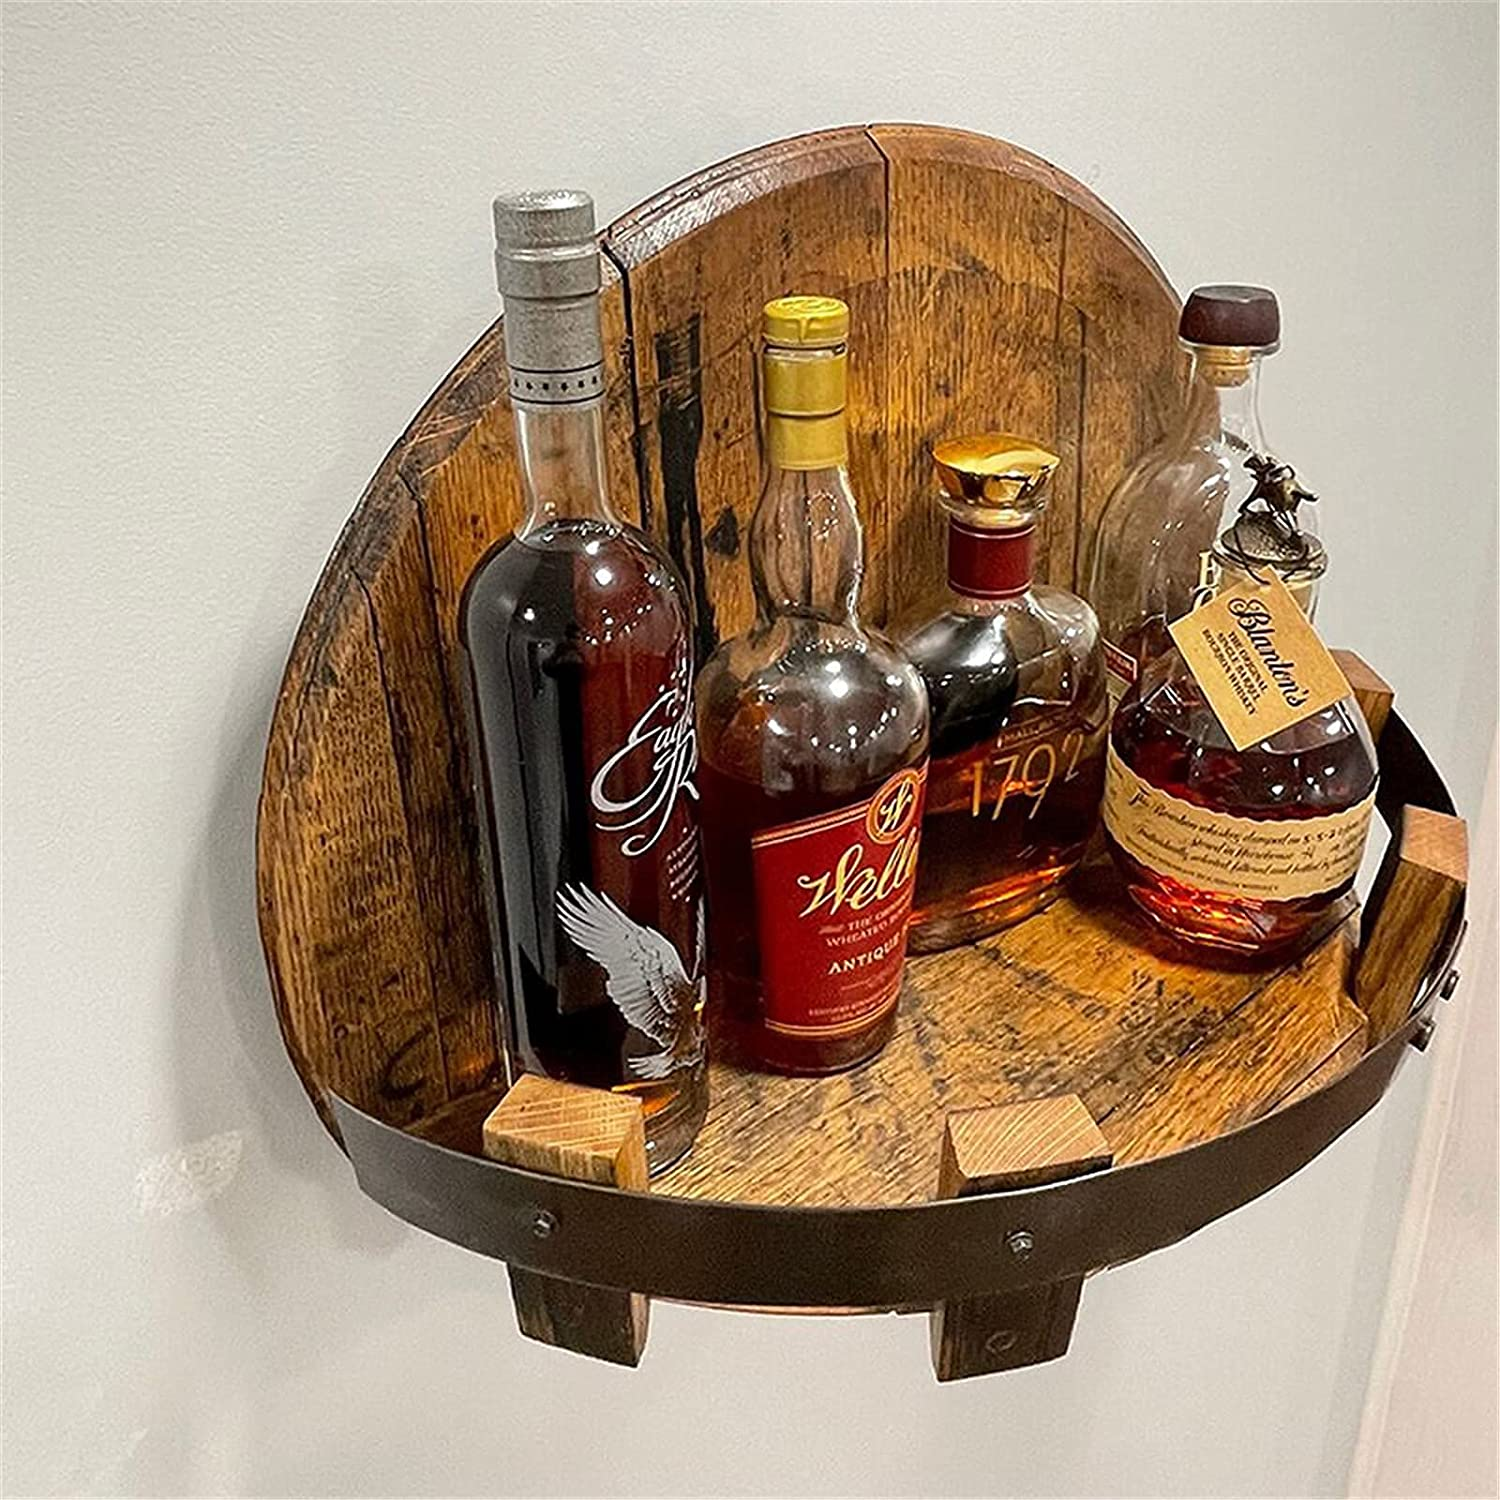 VCBMRT Hand Super Free shipping / New beauty product restock quality top Crafted Liquor Bottle Rack Wine Mounted Display-Wall